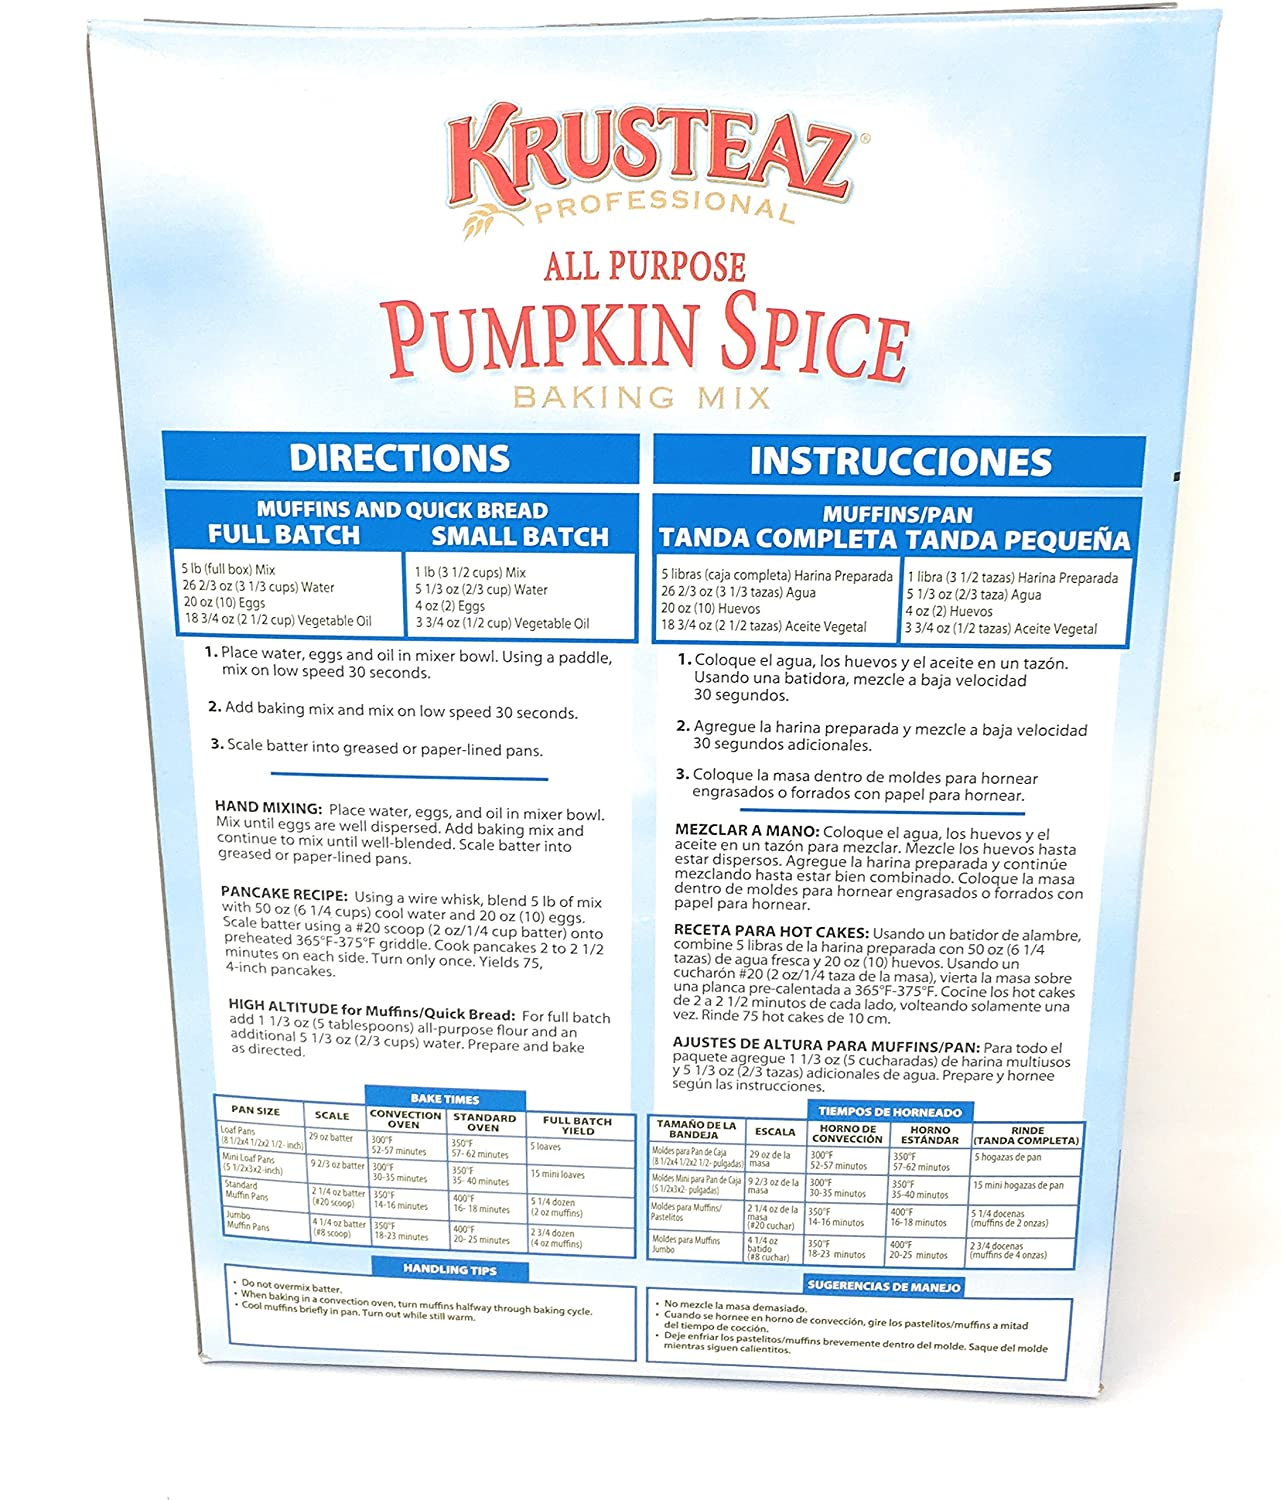 Amazon.com : Krusteaz All Purpose Pumpkin Spice Baking Mix 5 Pound Box : Grocery & Gourmet Food